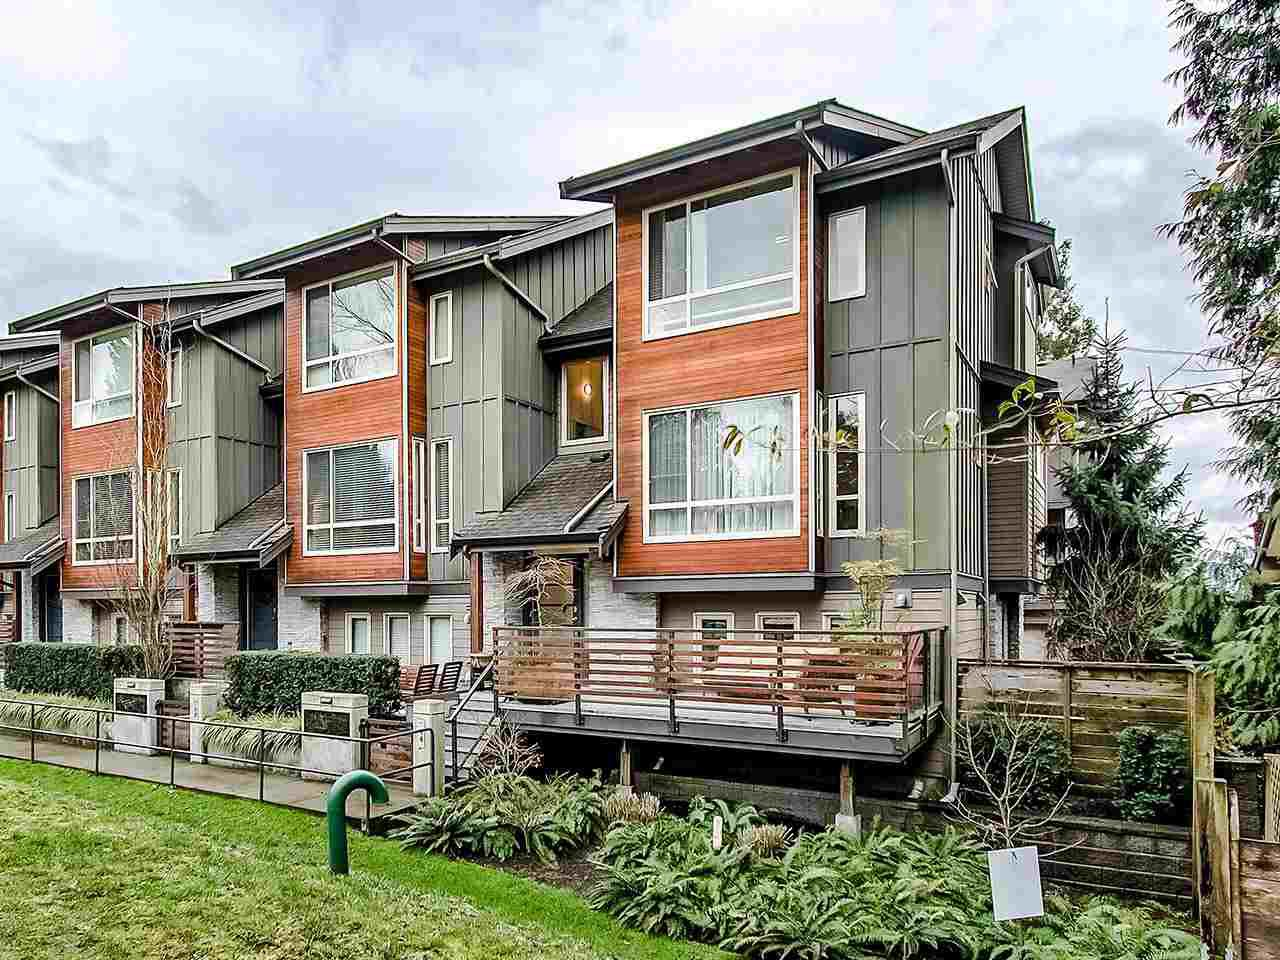 Legacy @ Nature's Edge. This is the best unit in the complex: End Unit (extra windows = extra light) and one of just 10 homes that look out over Digger Park!